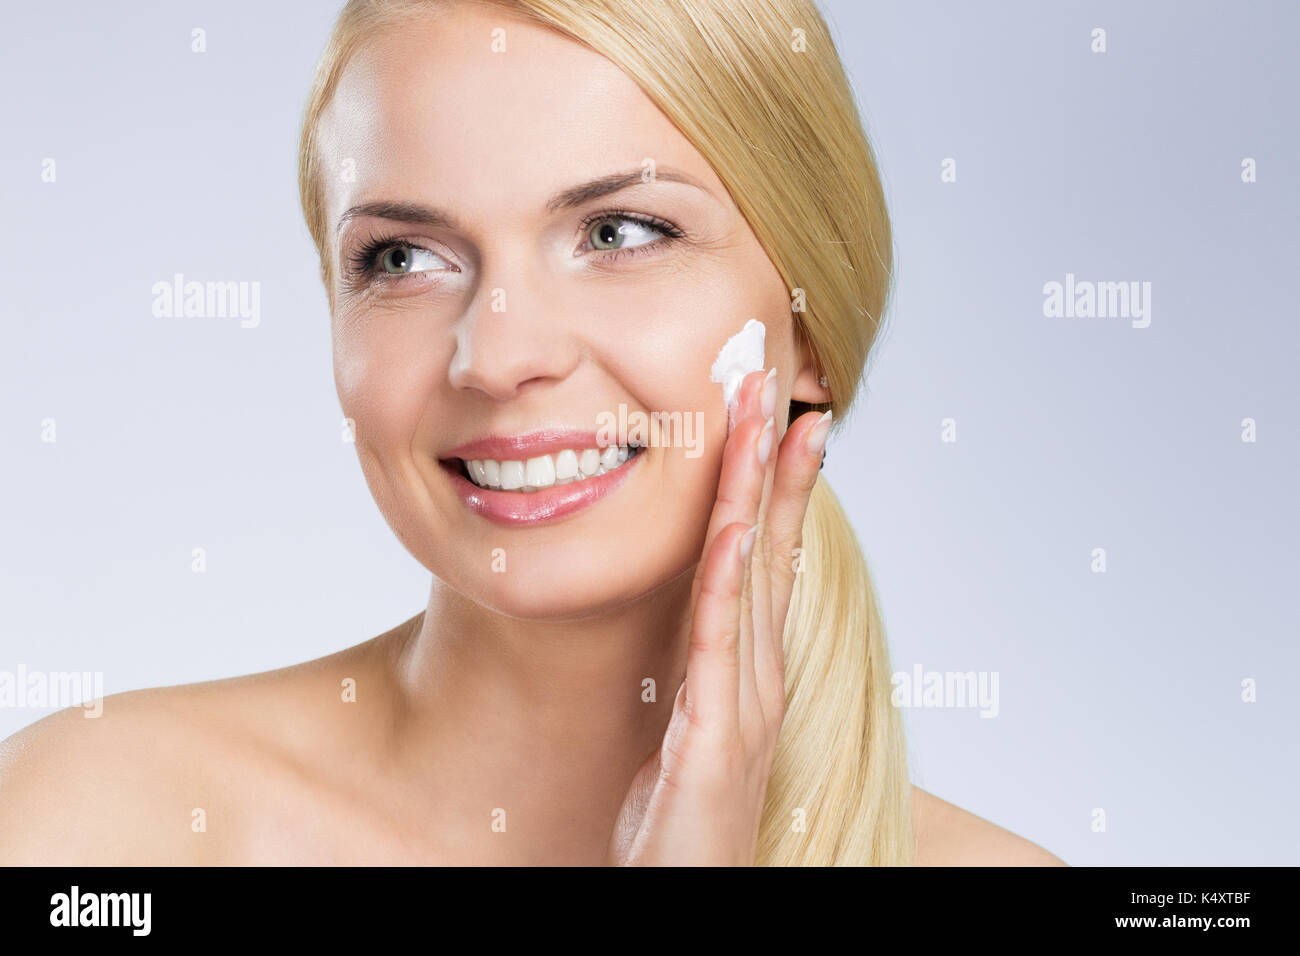 Close up portrait of young happy woman applying cream on face looking away - Stock Image